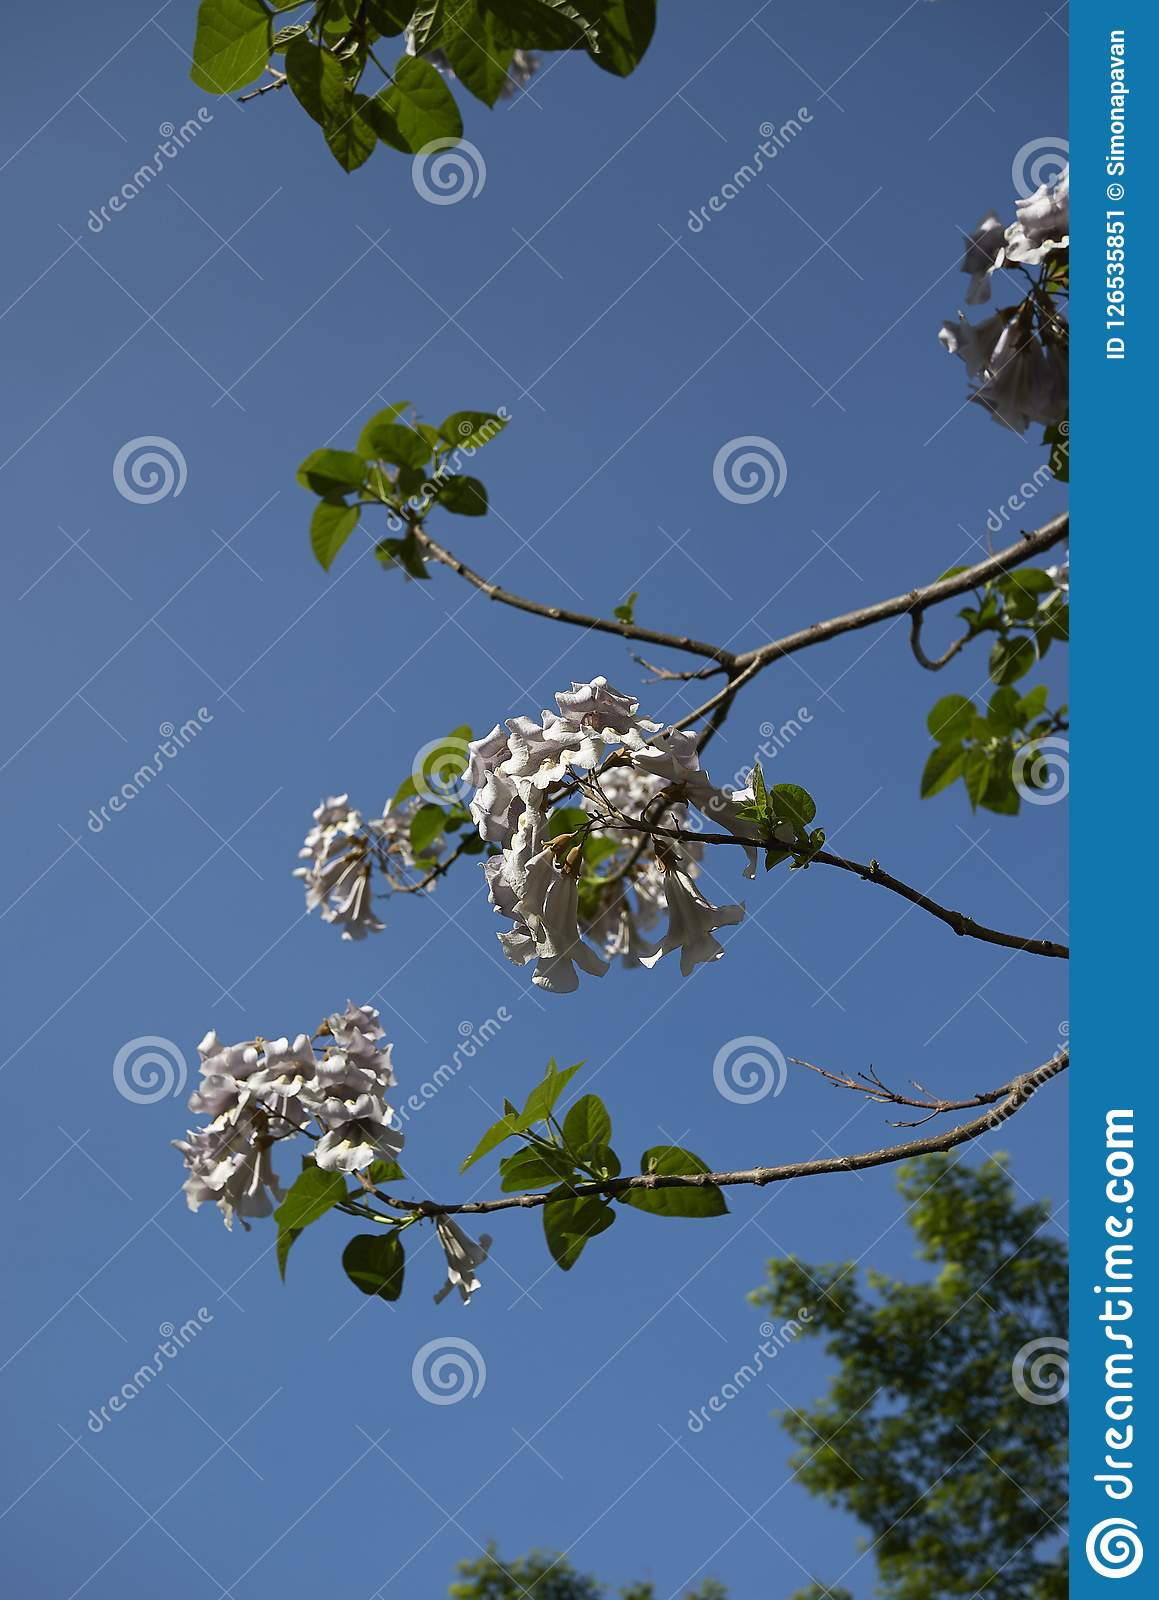 Branch with flowers of Paulownia tomentosa tree